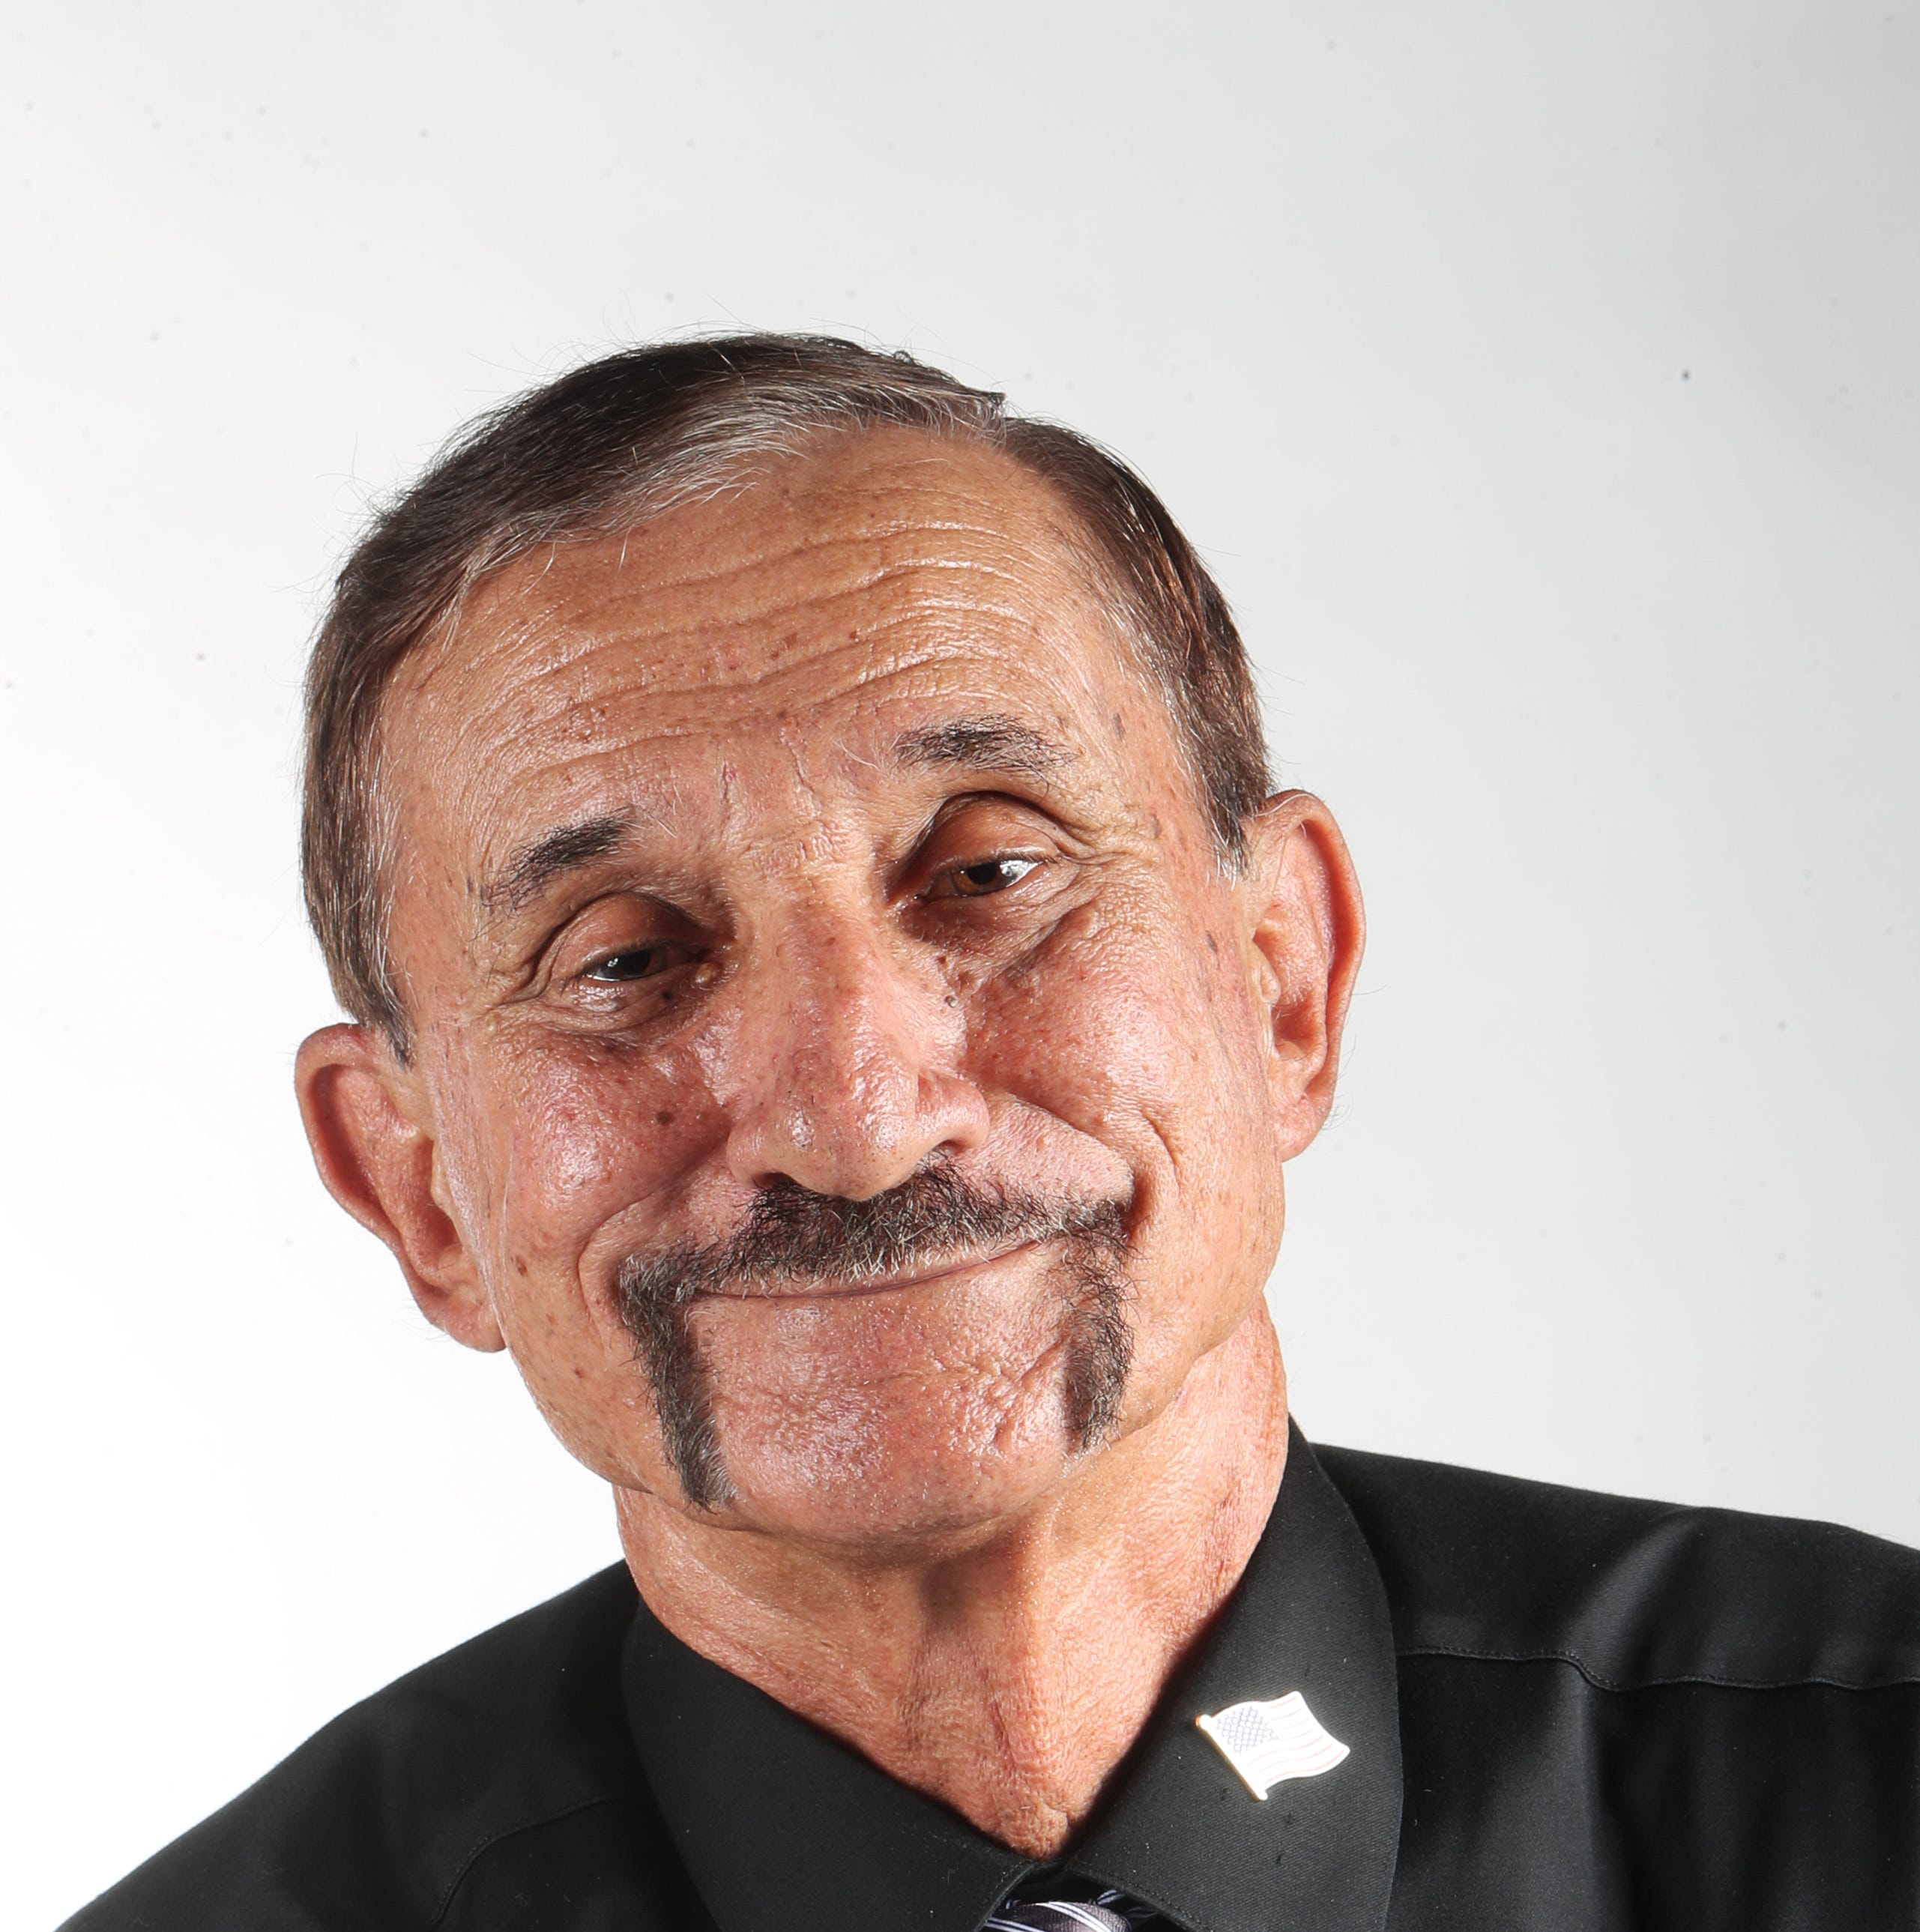 Lee County school board candidate Louis Navarra arrested in Cape Coral